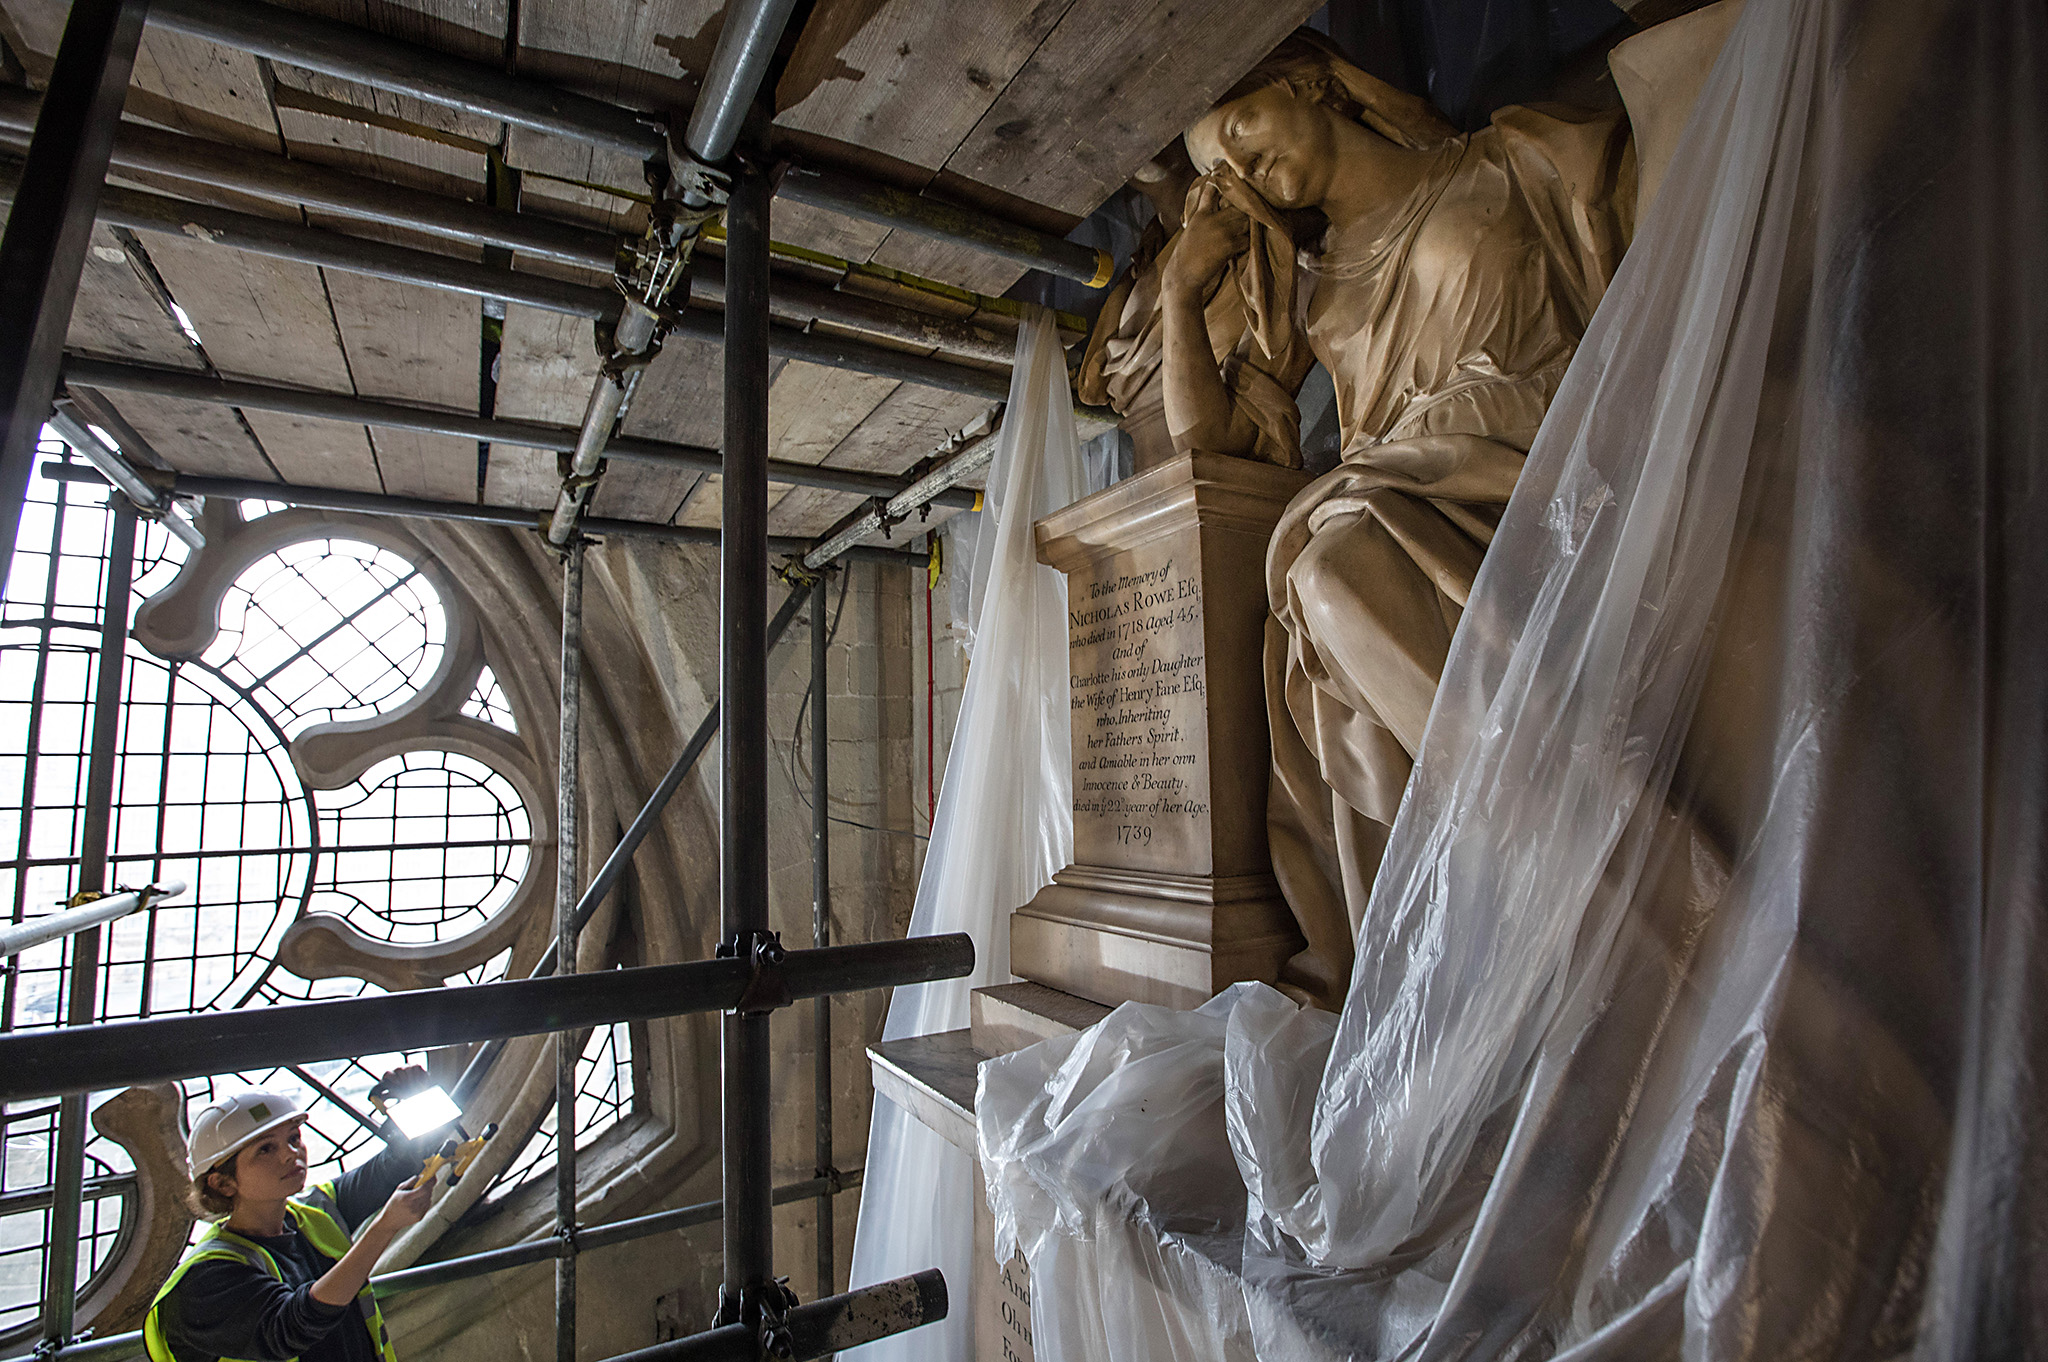 A statue is covered during restoration work at Westminster Abbey on December 9, 2016 in London, England. Restoration work is continuing to transform part of the 13th-century Triforium into a new viewing and gallery area that will be open to the public for the first time. As well as exhibiting many historical objects from the abbey, the new £19m GBP space will give visitors views down over the abbey buildings and the neighbouring Palace of Westminster. The work is due to be completed by 2018.  (Photo by Dan Kitwood/Getty Images)